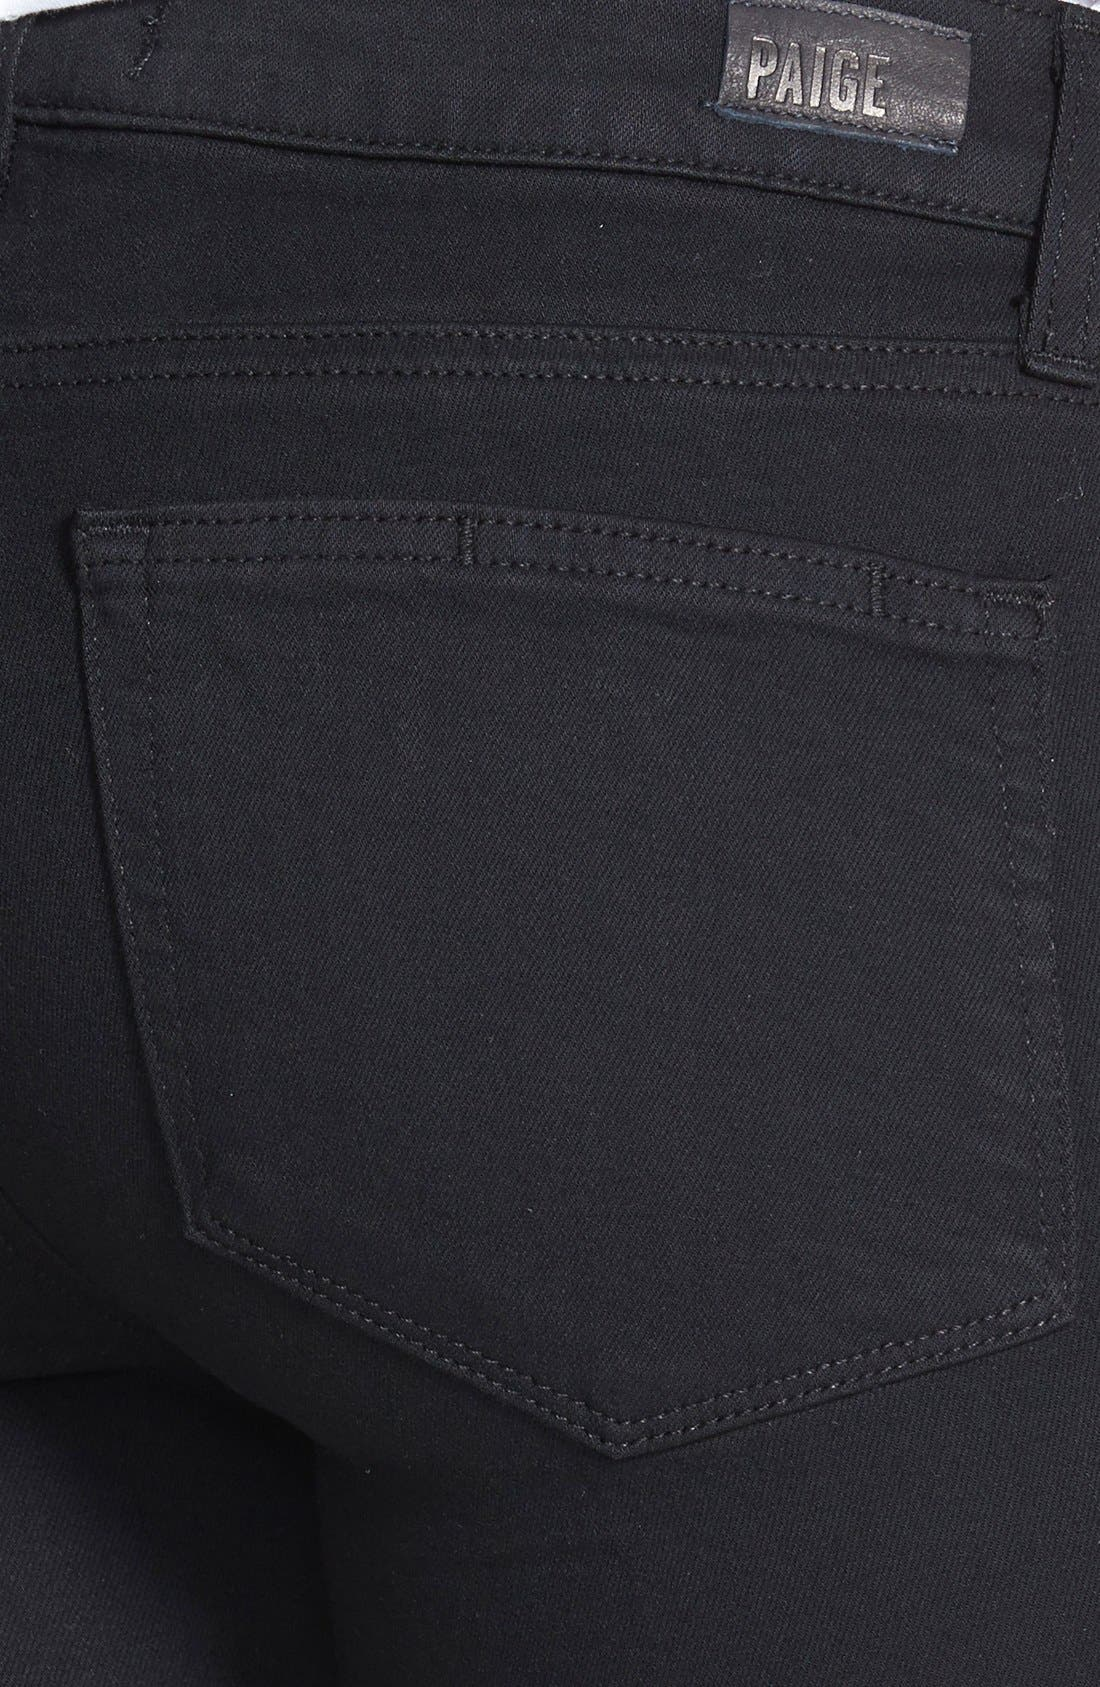 Alternate Image 3  - PAIGE Transcend - Skyline Bootcut Jeans (Black Shadow)